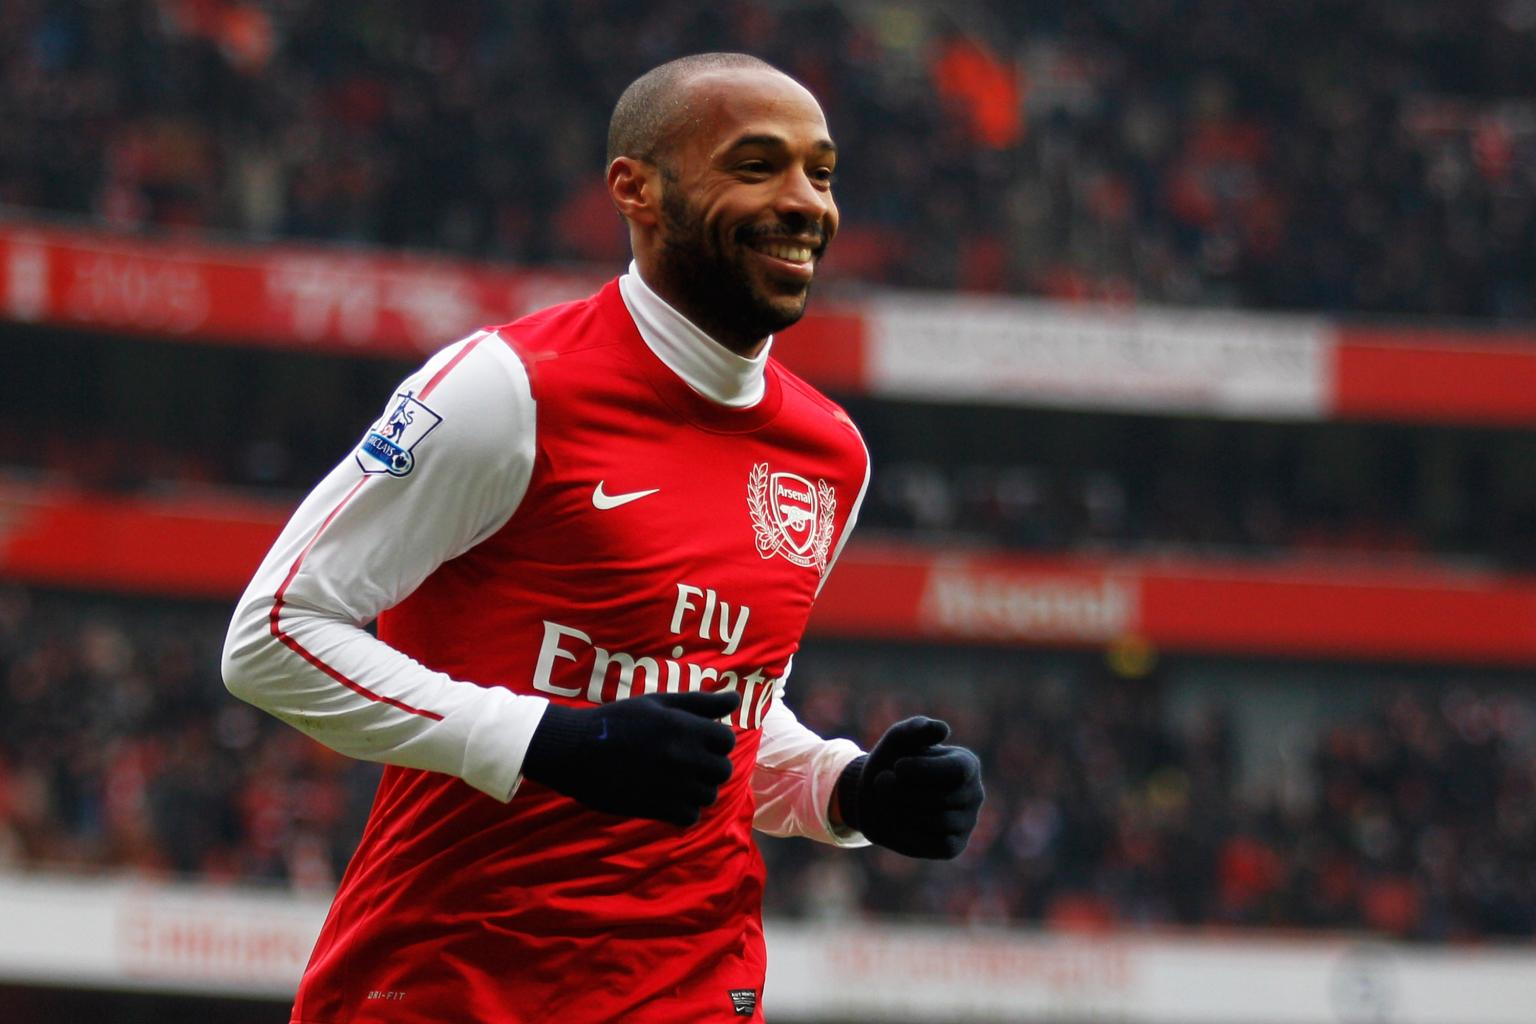 Paul Scholes: Arsenal's Thierry Henry Could Destroy Players With His